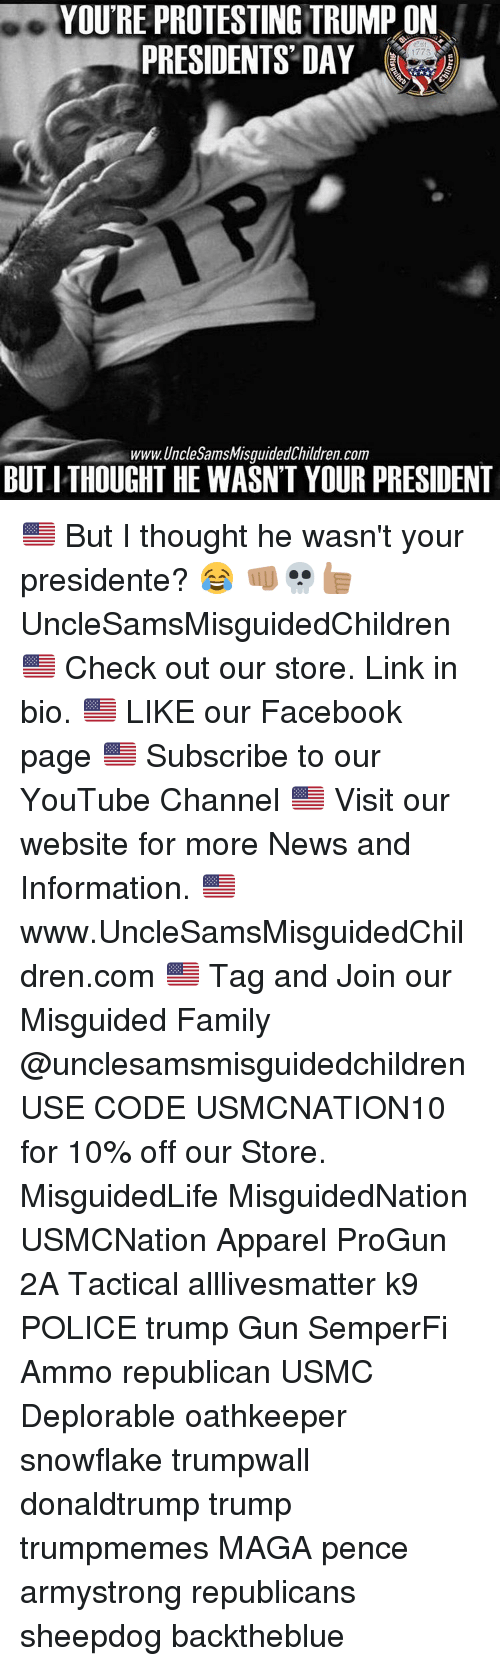 All Lives Matter, Facebook, and Family: YOURE PROTESTING TRUMP ON  PRESIDENTS DAY  1773  www.Uncle SamsMisguidedChildren.com  BUTITHOUGHT HE WASN'T YOUR PRESIDENT 🇺🇸 But I thought he wasn't your presidente? 😂 👊🏽💀👍🏽 UncleSamsMisguidedChildren 🇺🇸 Check out our store. Link in bio. 🇺🇸 LIKE our Facebook page 🇺🇸 Subscribe to our YouTube Channel 🇺🇸 Visit our website for more News and Information. 🇺🇸 www.UncleSamsMisguidedChildren.com 🇺🇸 Tag and Join our Misguided Family @unclesamsmisguidedchildren USE CODE USMCNATION10 for 10% off our Store. MisguidedLife MisguidedNation USMCNation Apparel ProGun 2A Tactical alllivesmatter k9 POLICE trump Gun SemperFi Ammo republican USMC Deplorable oathkeeper snowflake trumpwall donaldtrump trump trumpmemes MAGA pence armystrong republicans sheepdog backtheblue